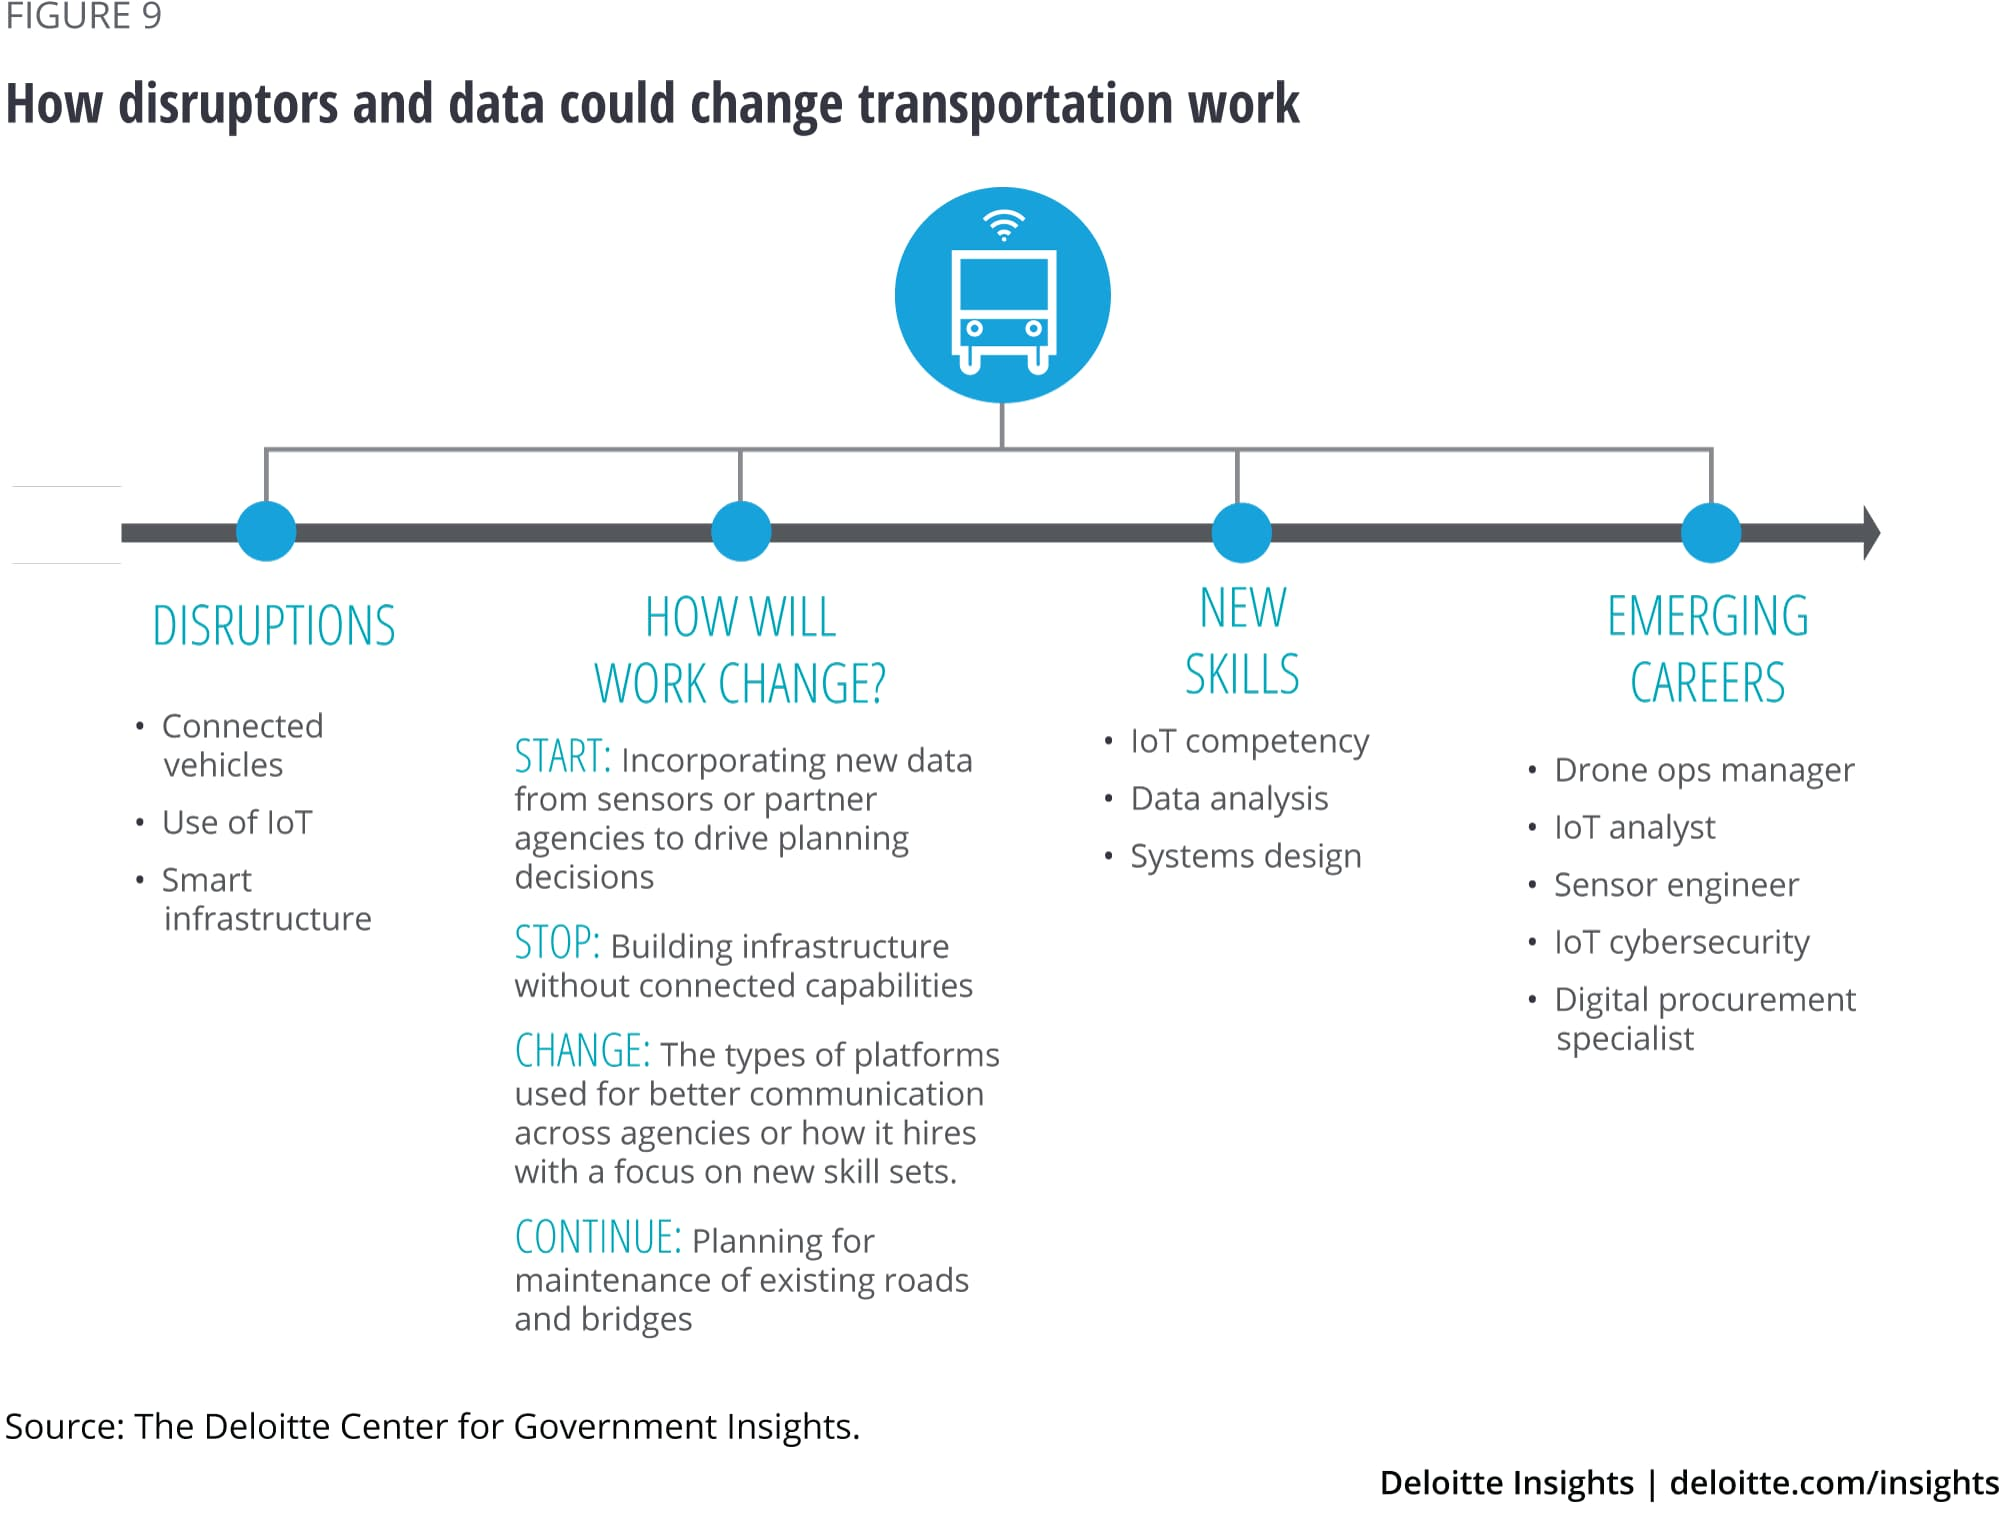 How disruptors and data could change transportation work